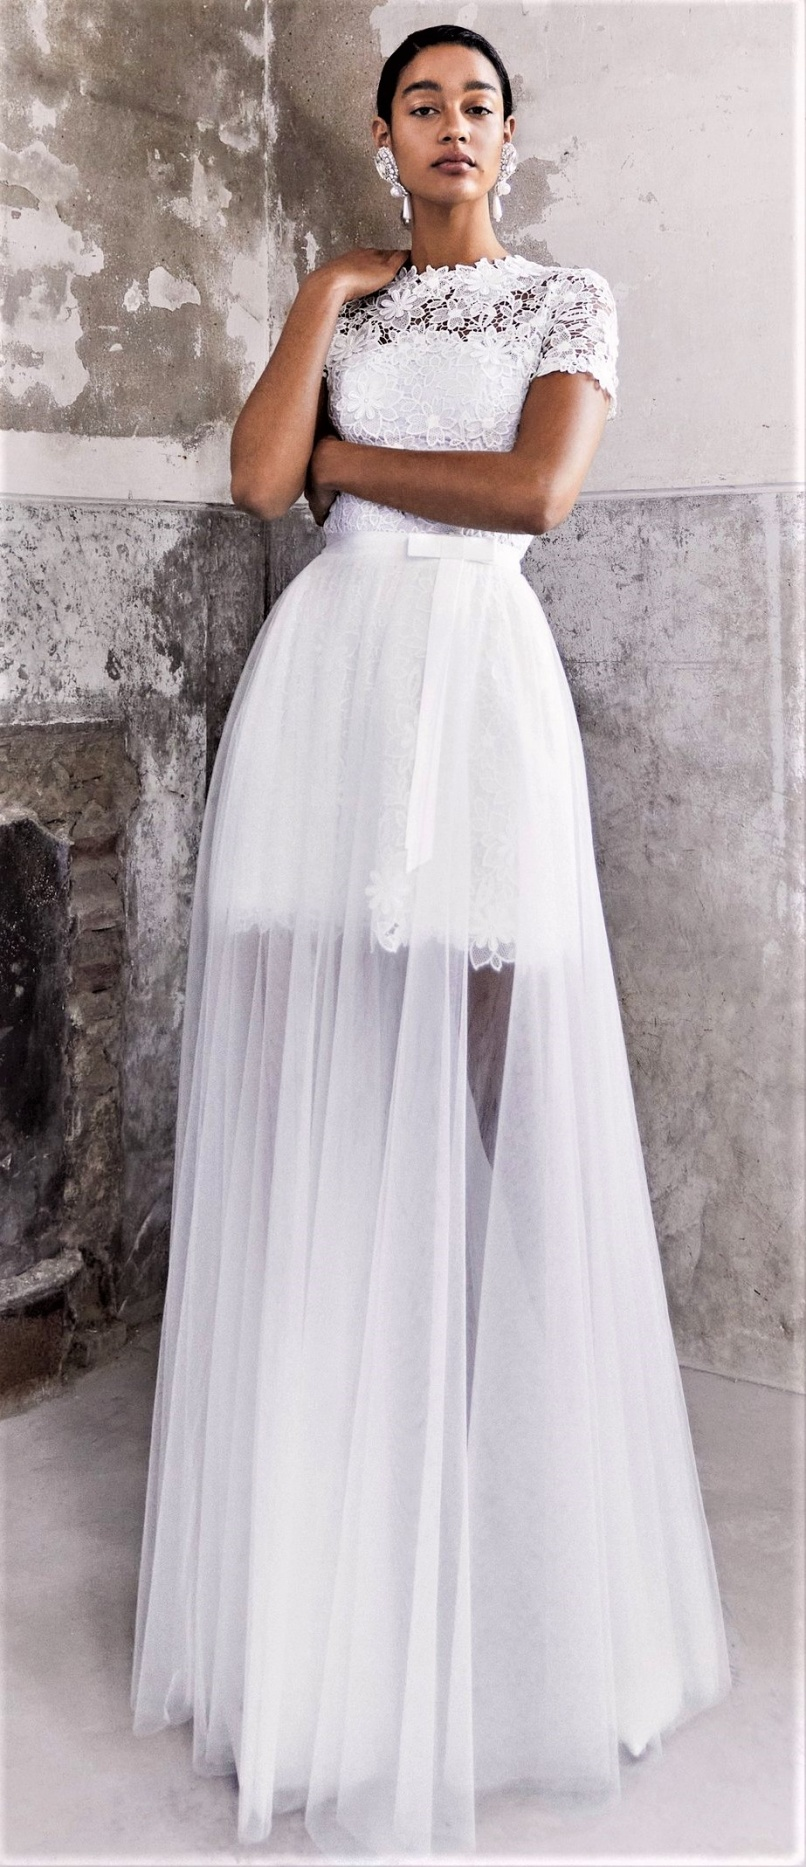 Viktor Rolf Mariage mini with long tulle skirt Bridal 10-20 pynck (2) cropped.jpg